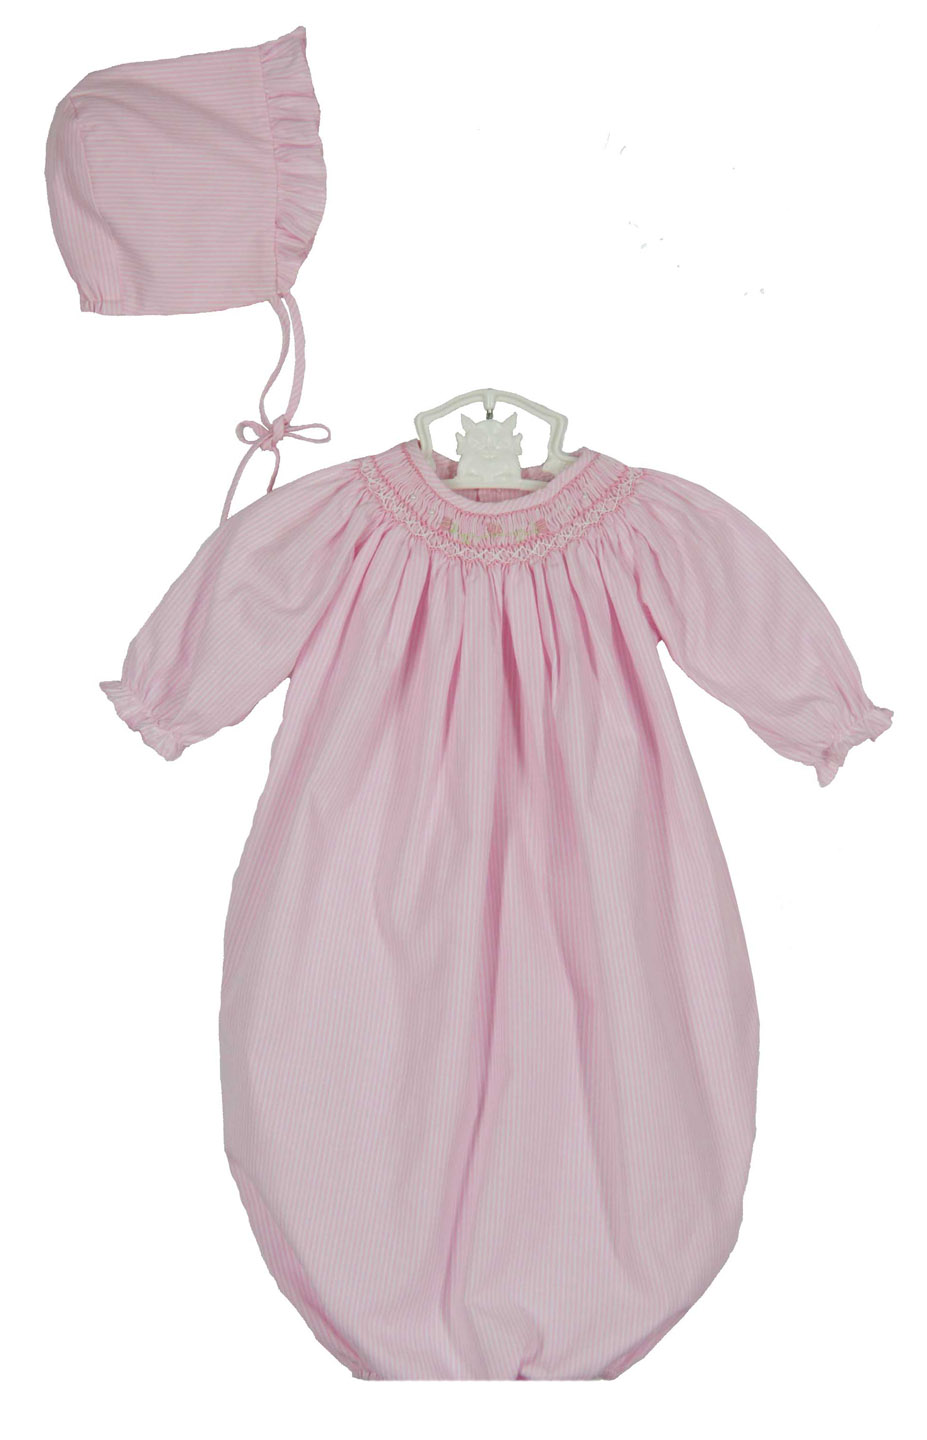 Petit Ami pink smocked gown and bonnet,pink smocked ...